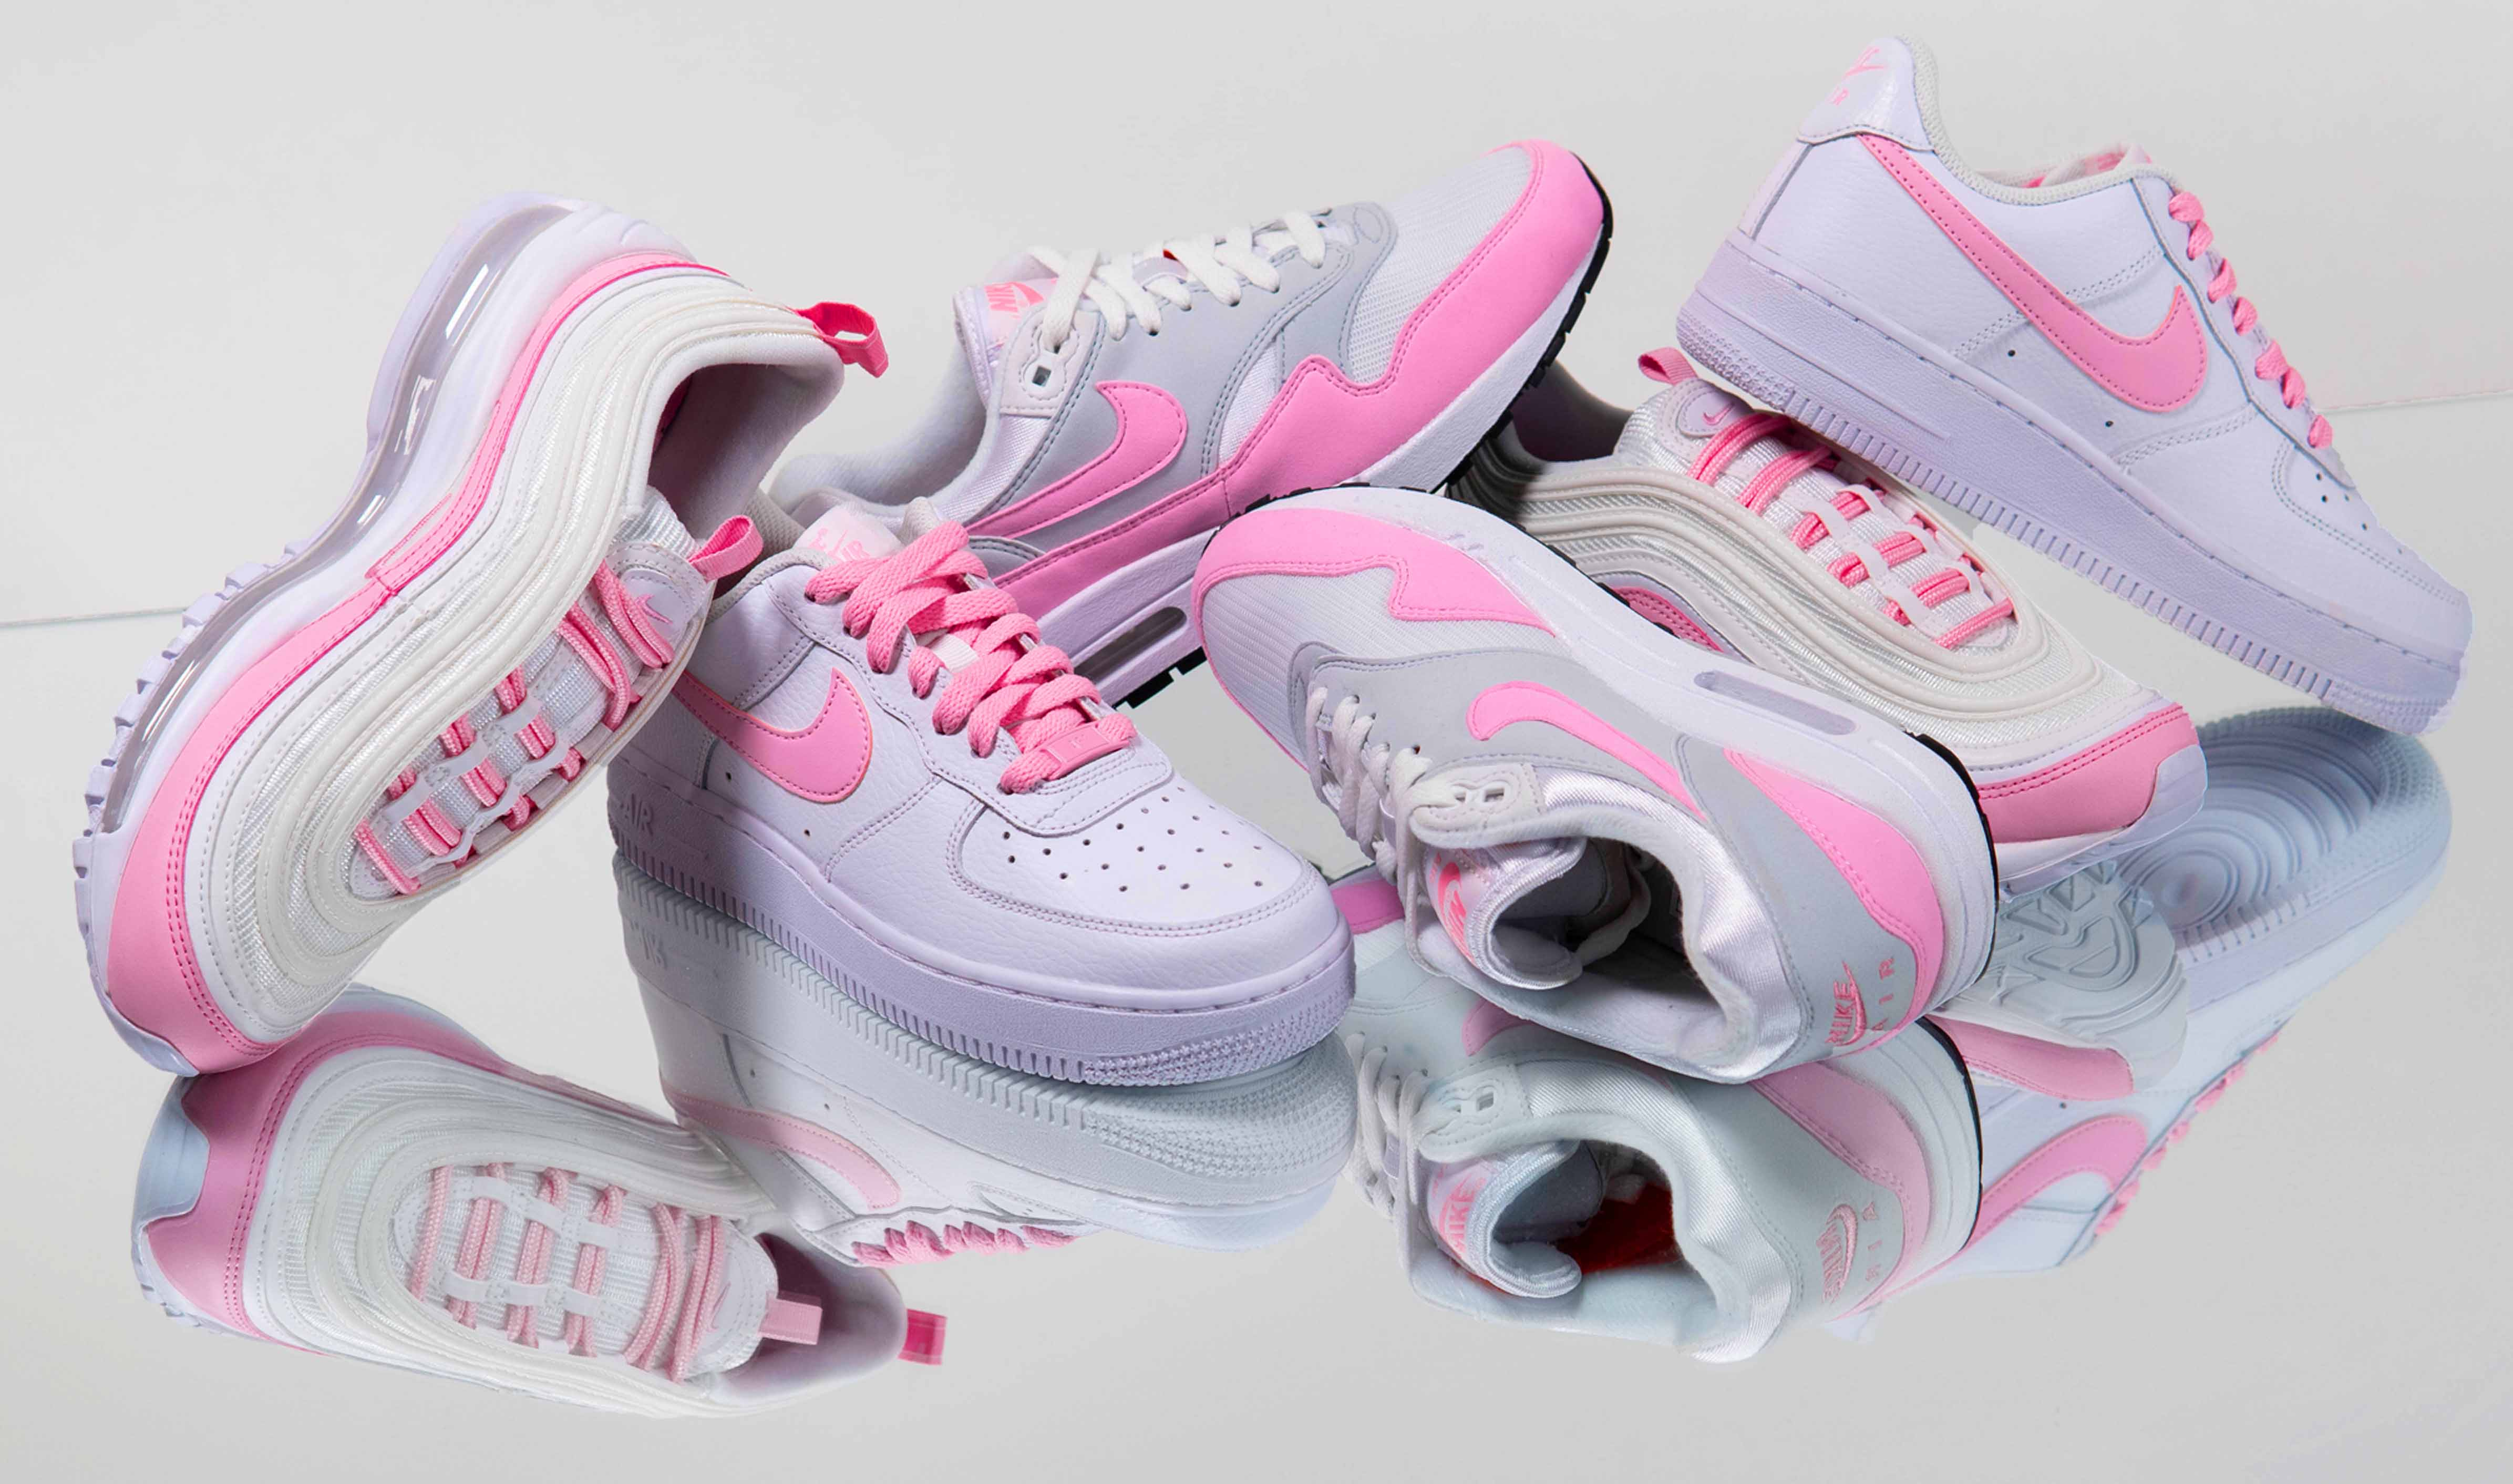 7f64af3bb An Exclusive Closer Look At Nike's 'Psychic Pink' Pack | Style ...